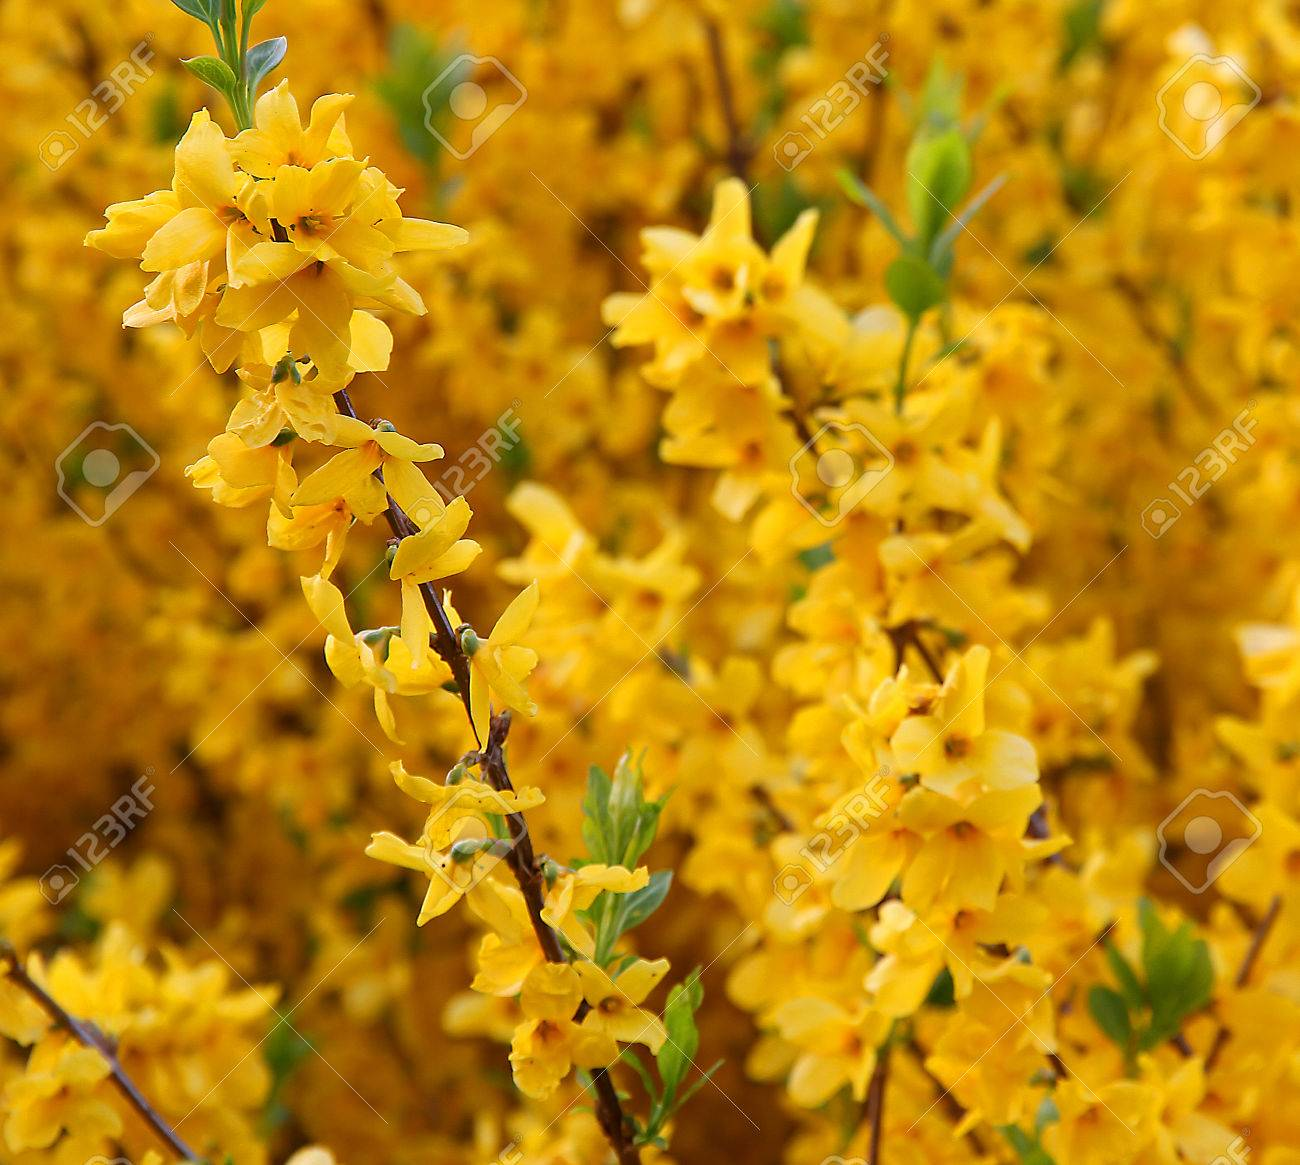 branch with yellow forsythia blooming flowers in spring stock, Beautiful flower